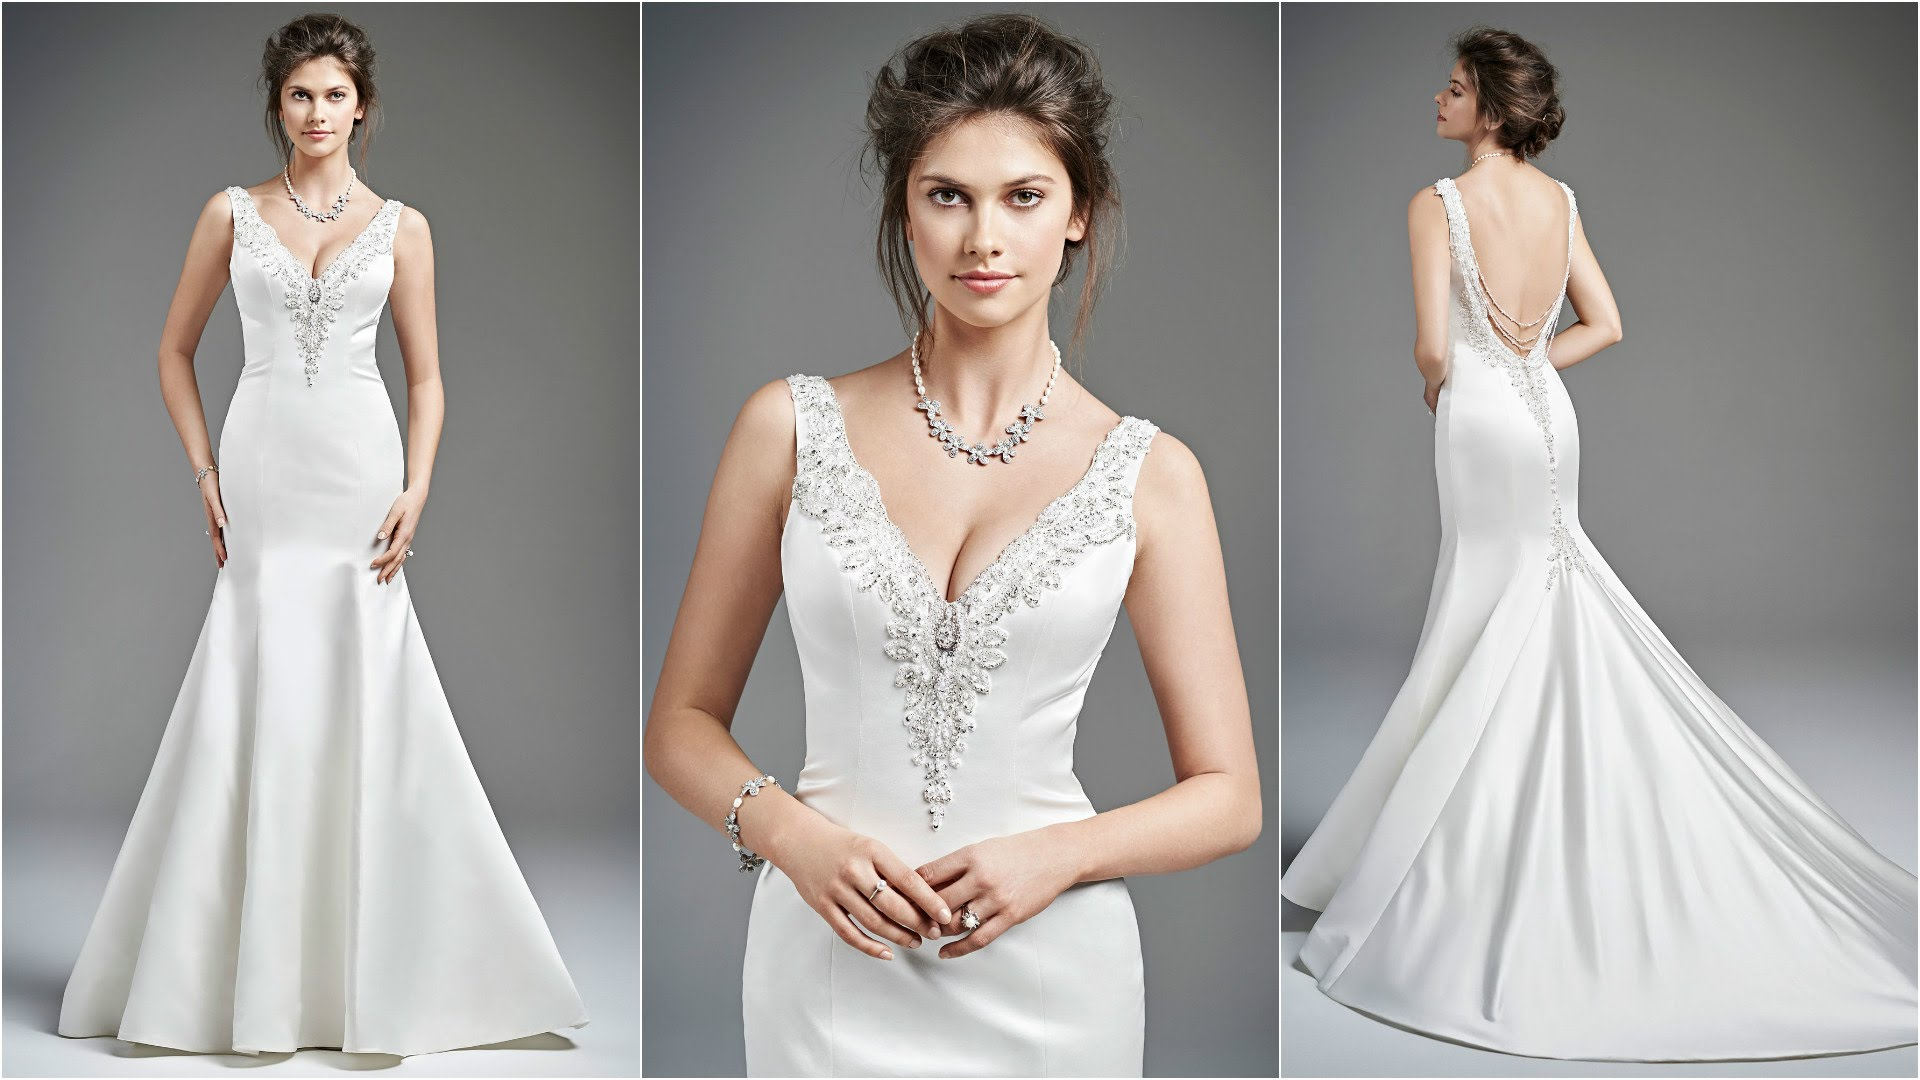 choose affordable vintage bridal wedding necklace jewelry sexy wedding dress